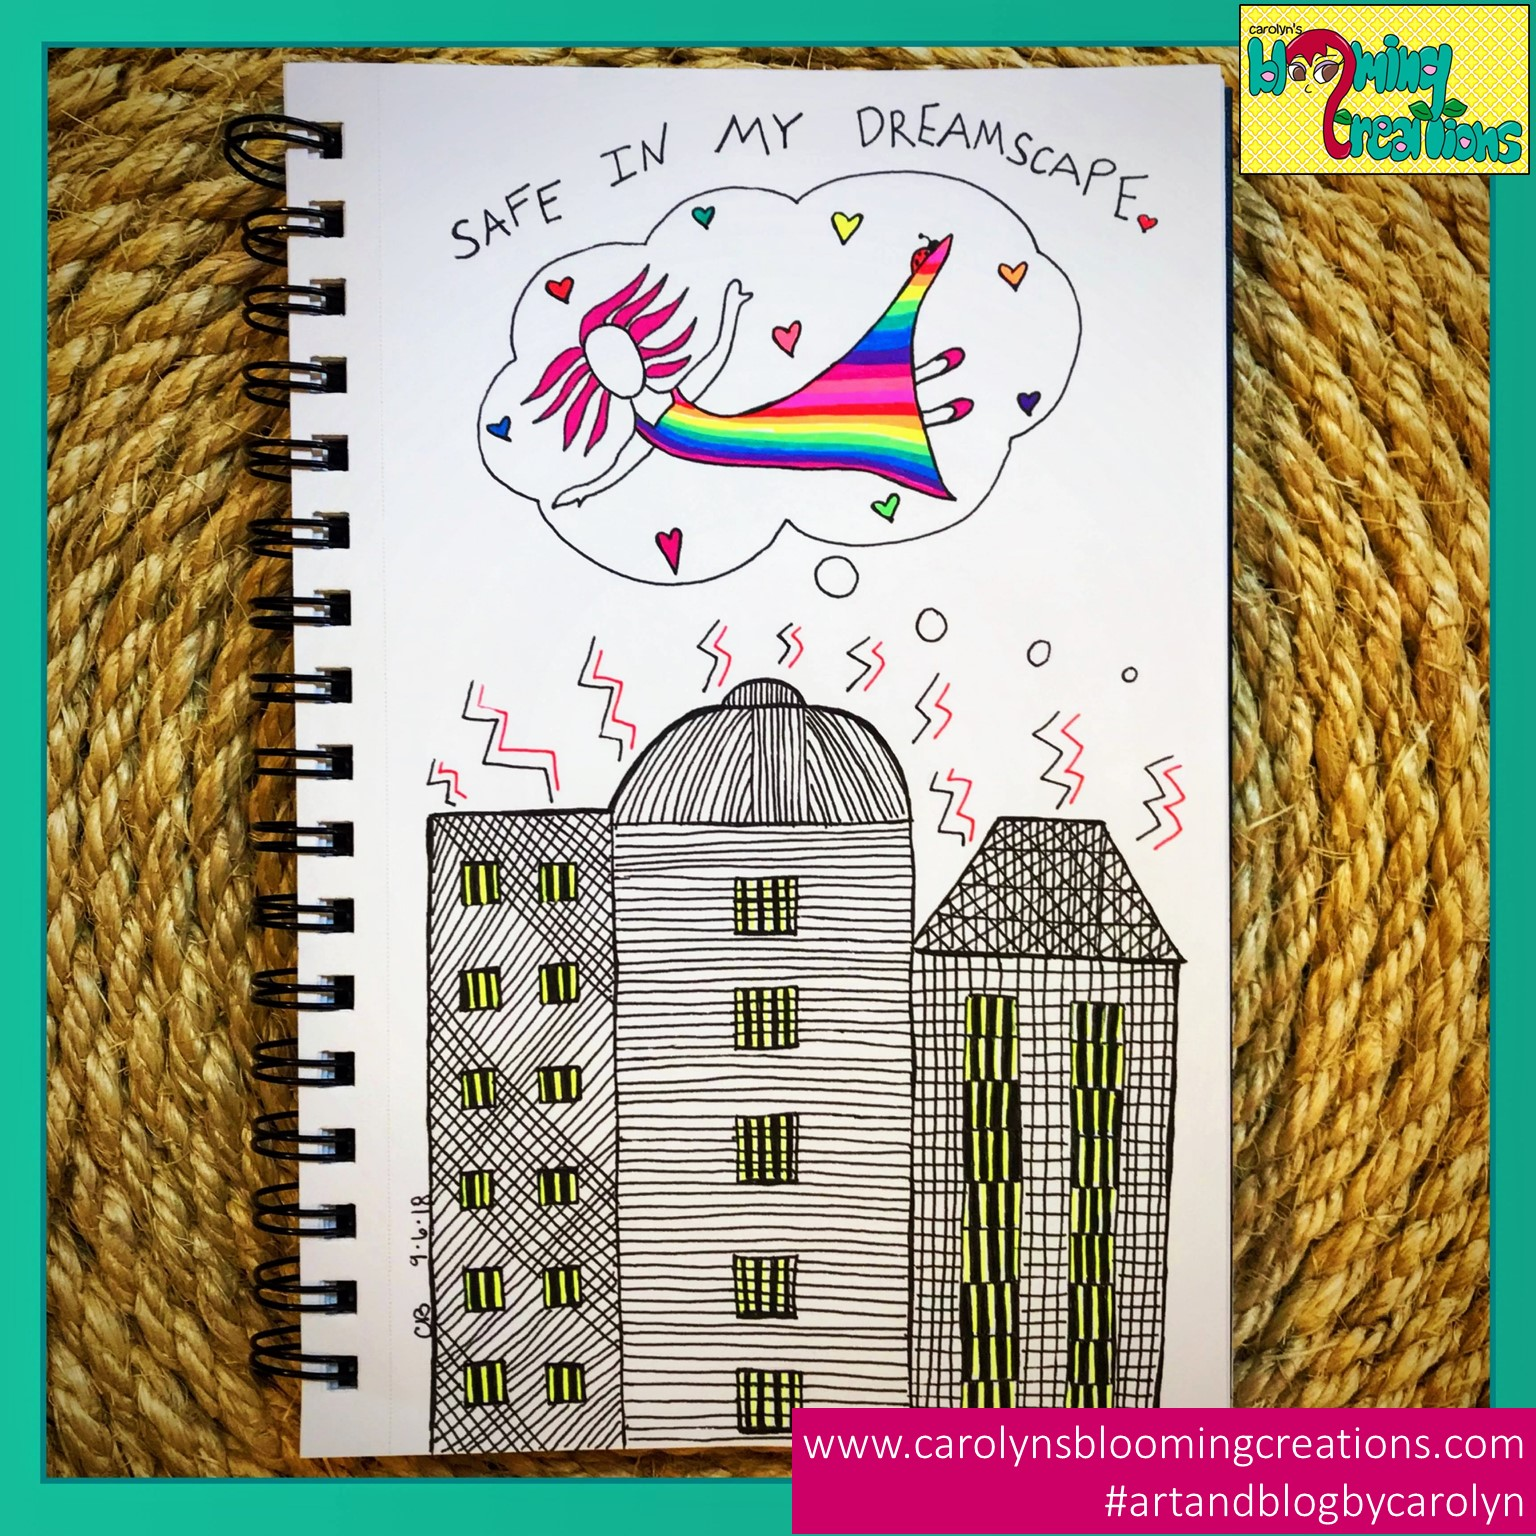 Art by Carolyn J. Braden using Gelly Roll pens and BIC pencils. I'm feeling safe living in the dreamscape of a life I've created into reality, and I really like it. I wish for others to work on creating their dream life and then love living it.